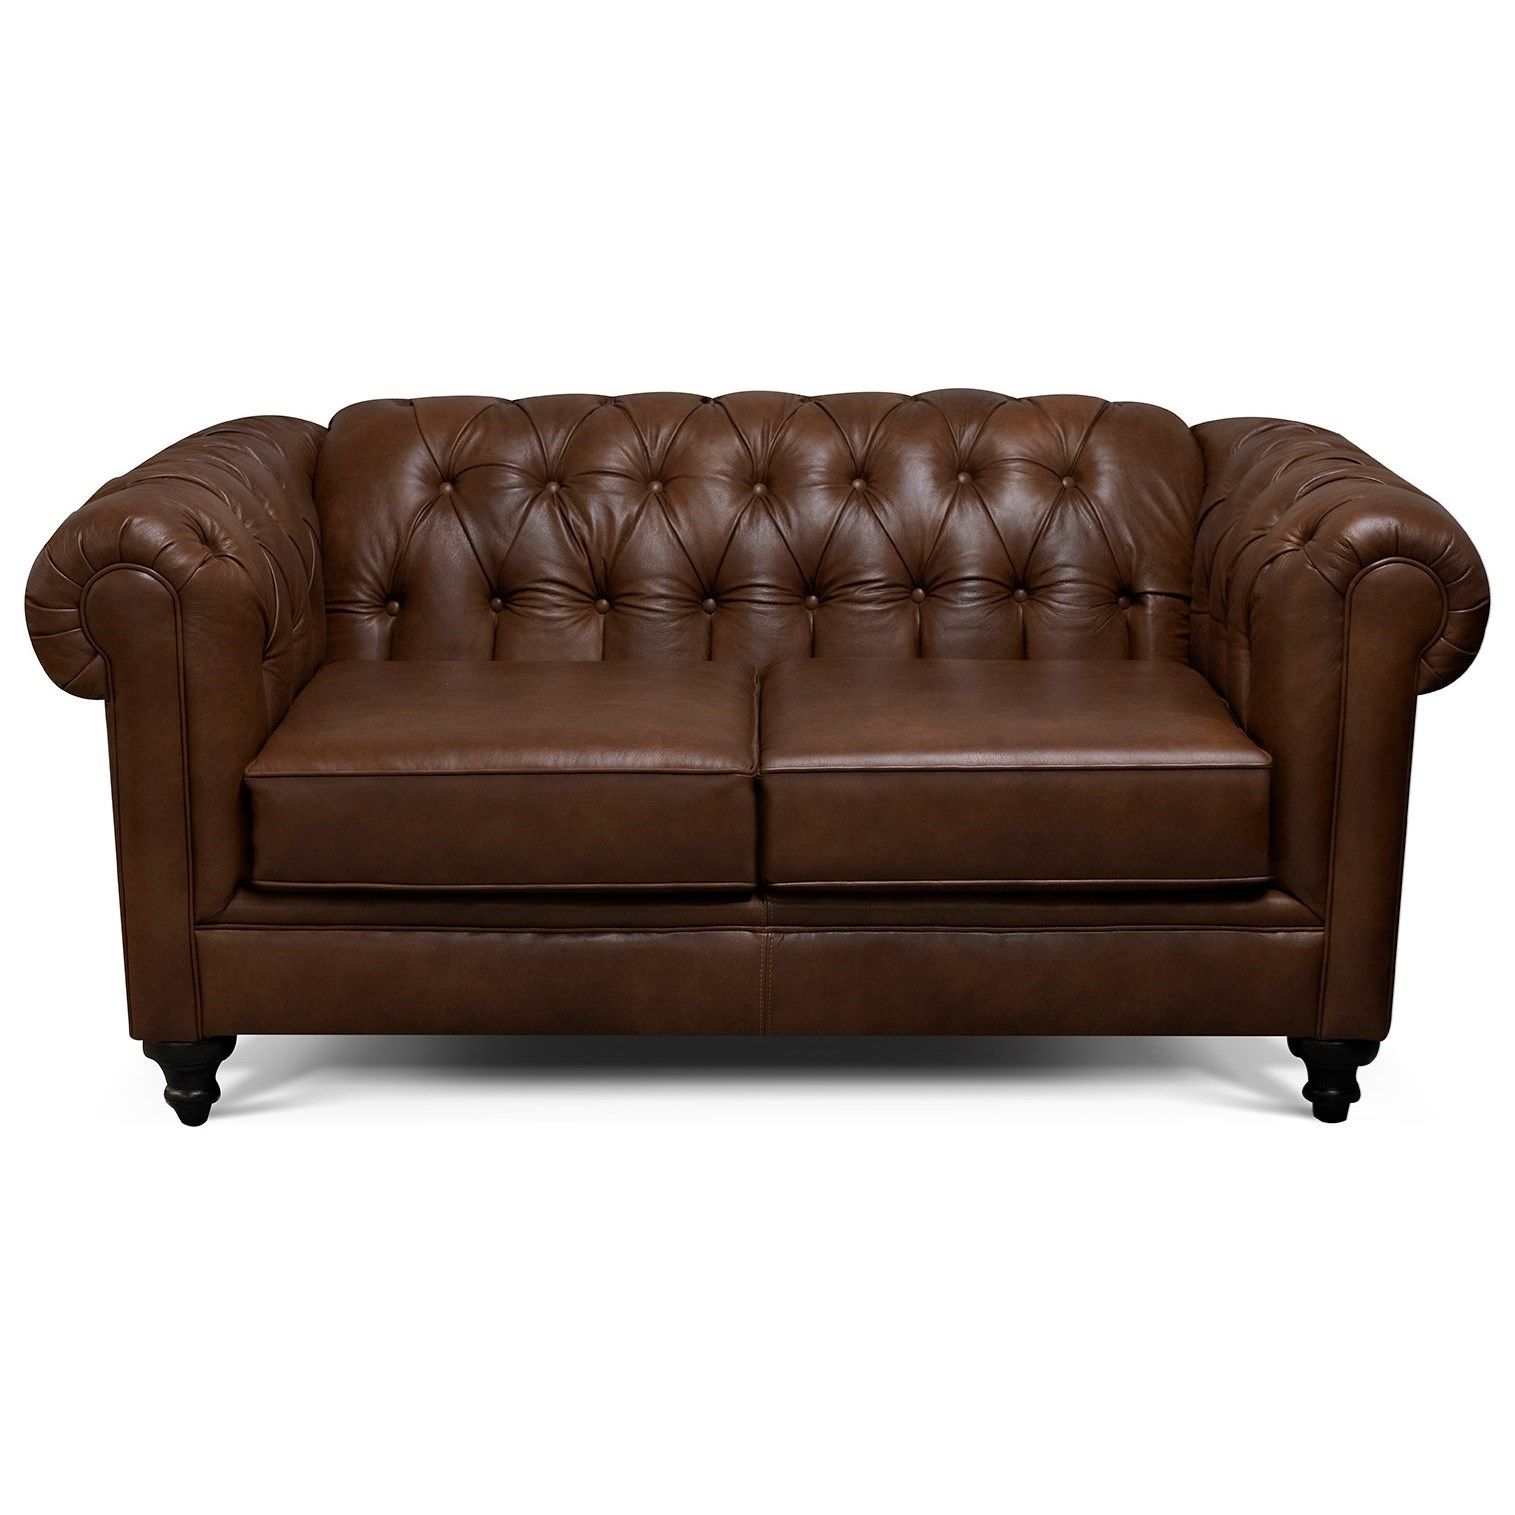 Brooks Loveseat by England at Crowley Furniture & Mattress